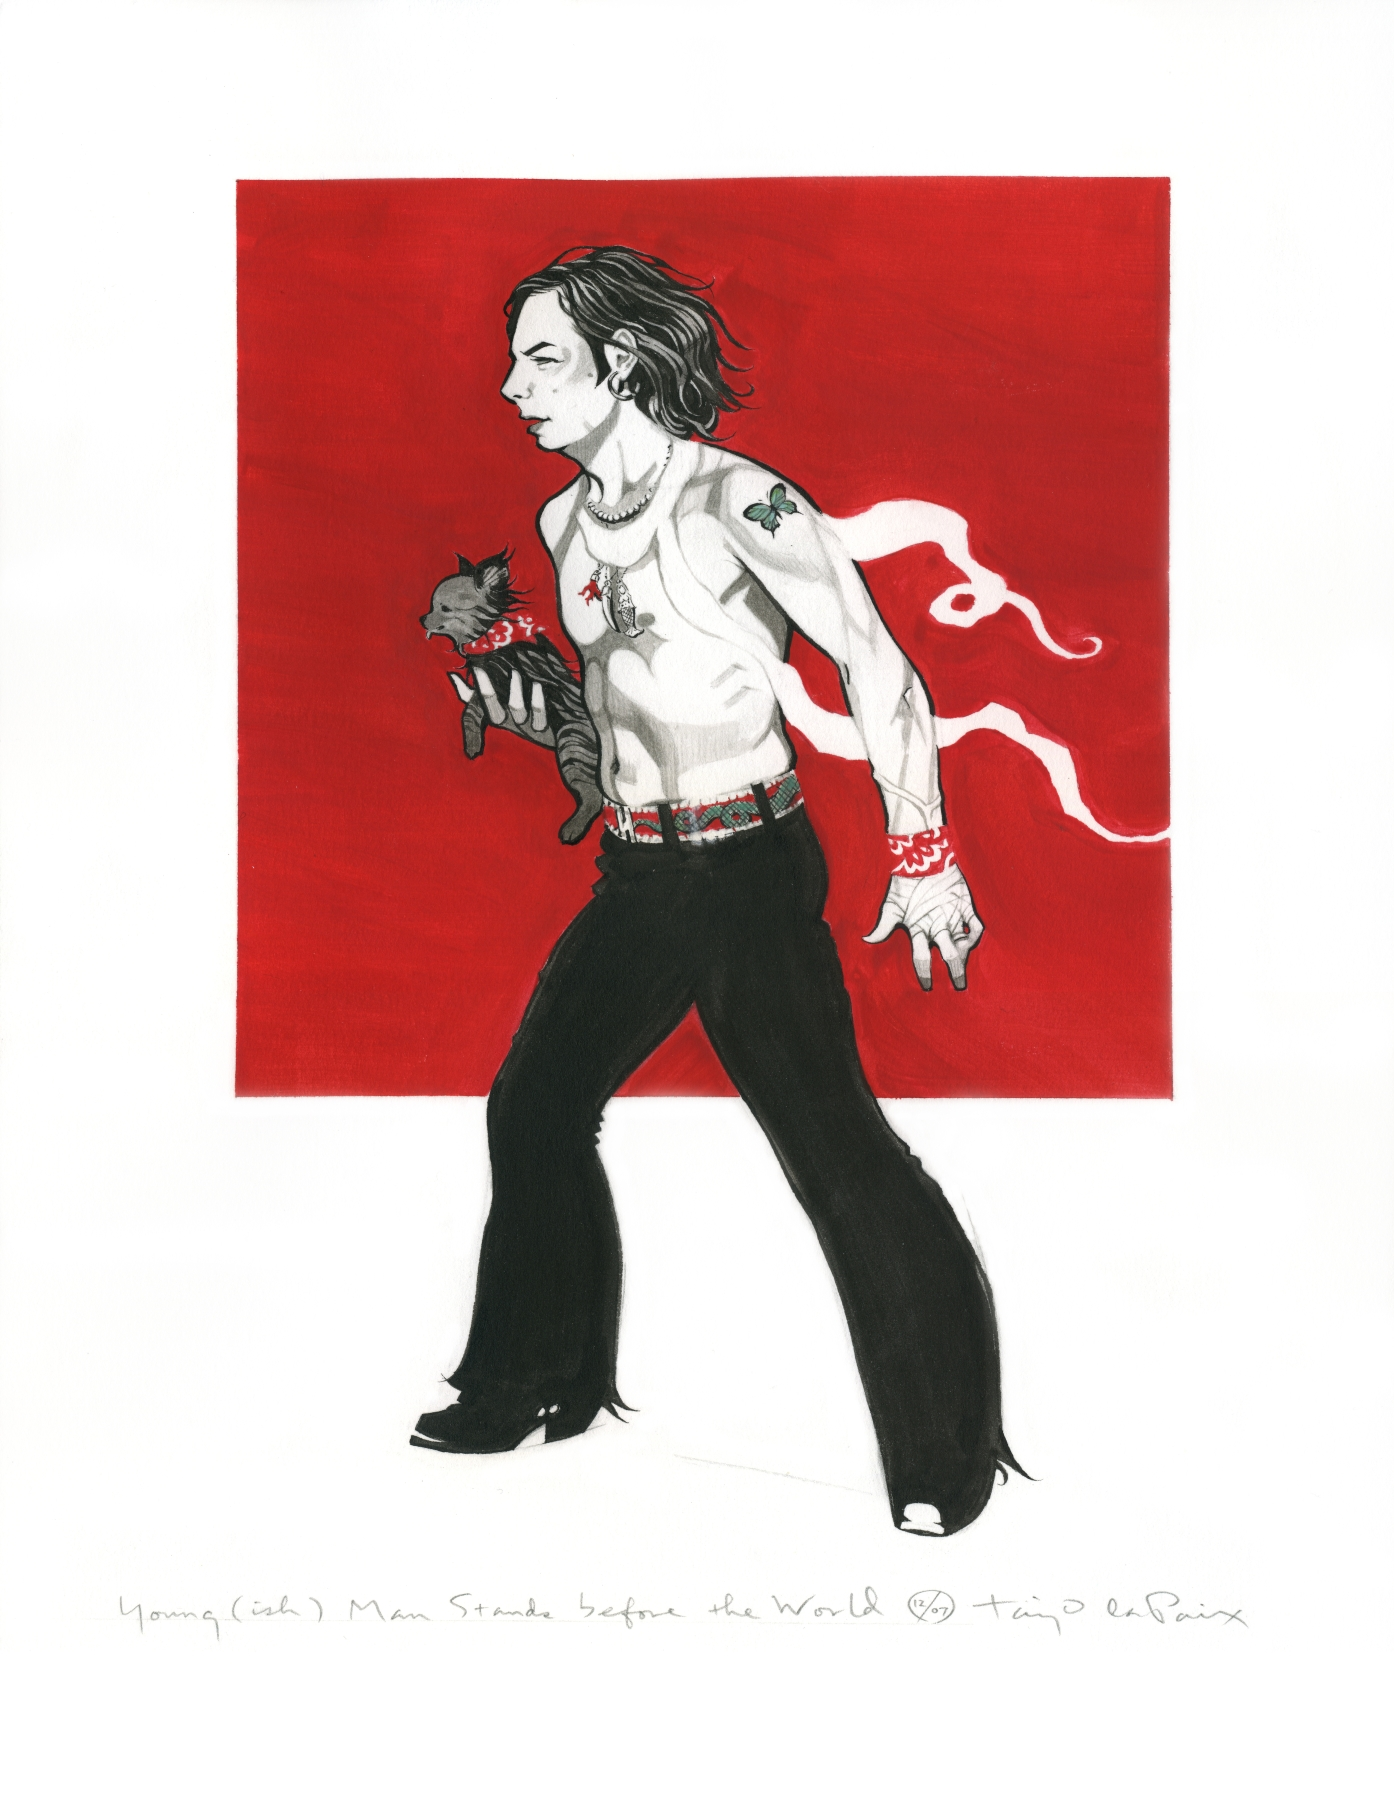 Young (ish) Man Stands before the World, 2007, ink and gouache on paper, 13 x 10 inches